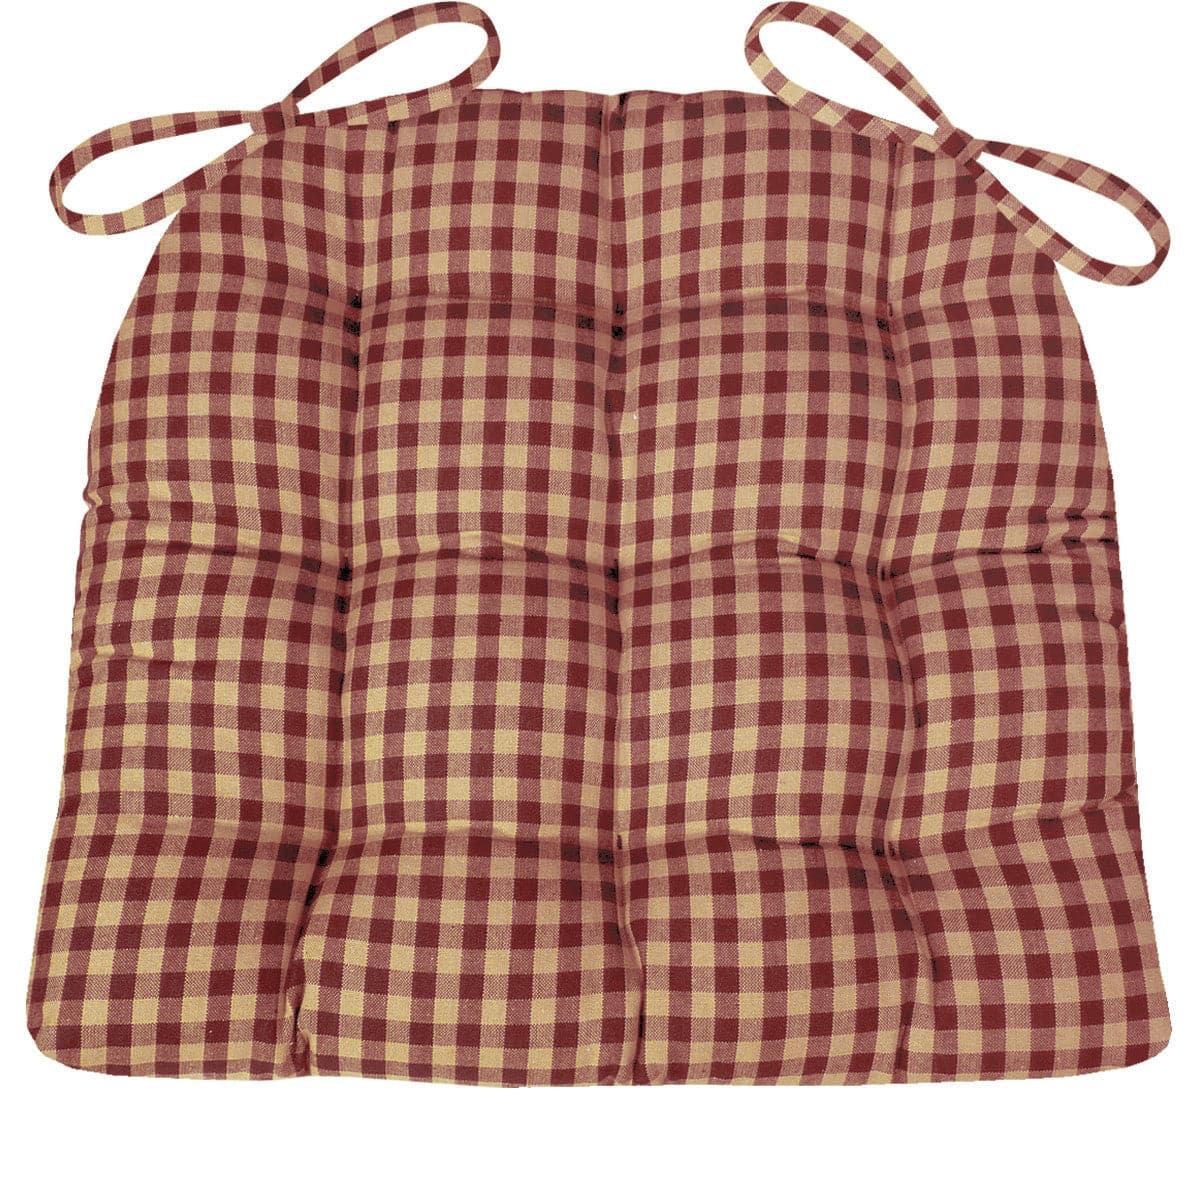 Bon Checkers Red Plaid Dining Chair Cushion | Barnett Home Decor ...